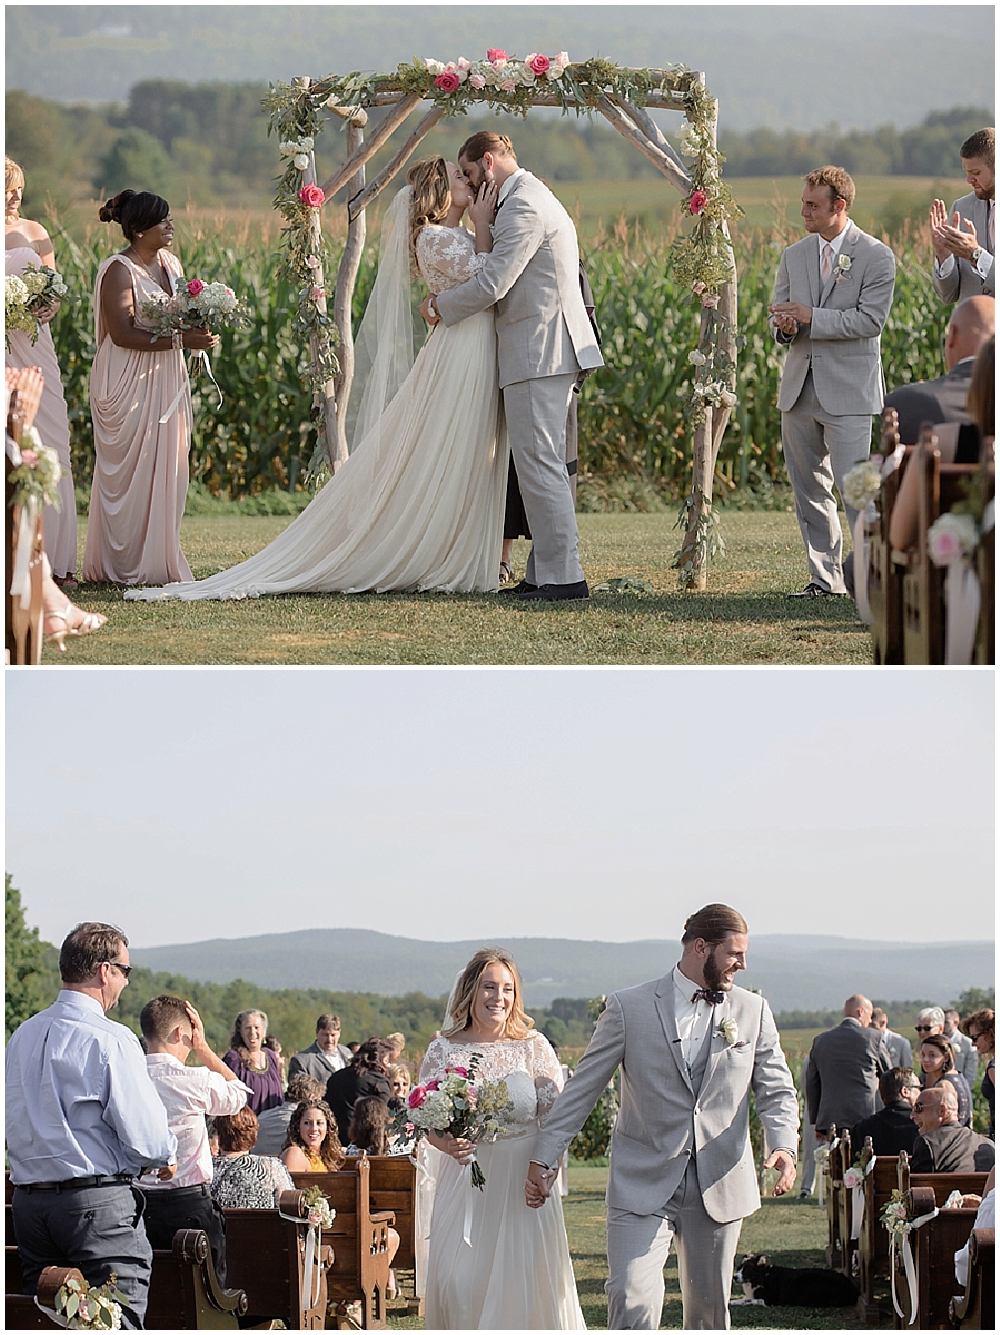 upstate-ny-farm-wedding-photographer-gilbertsville-farmhouse-15